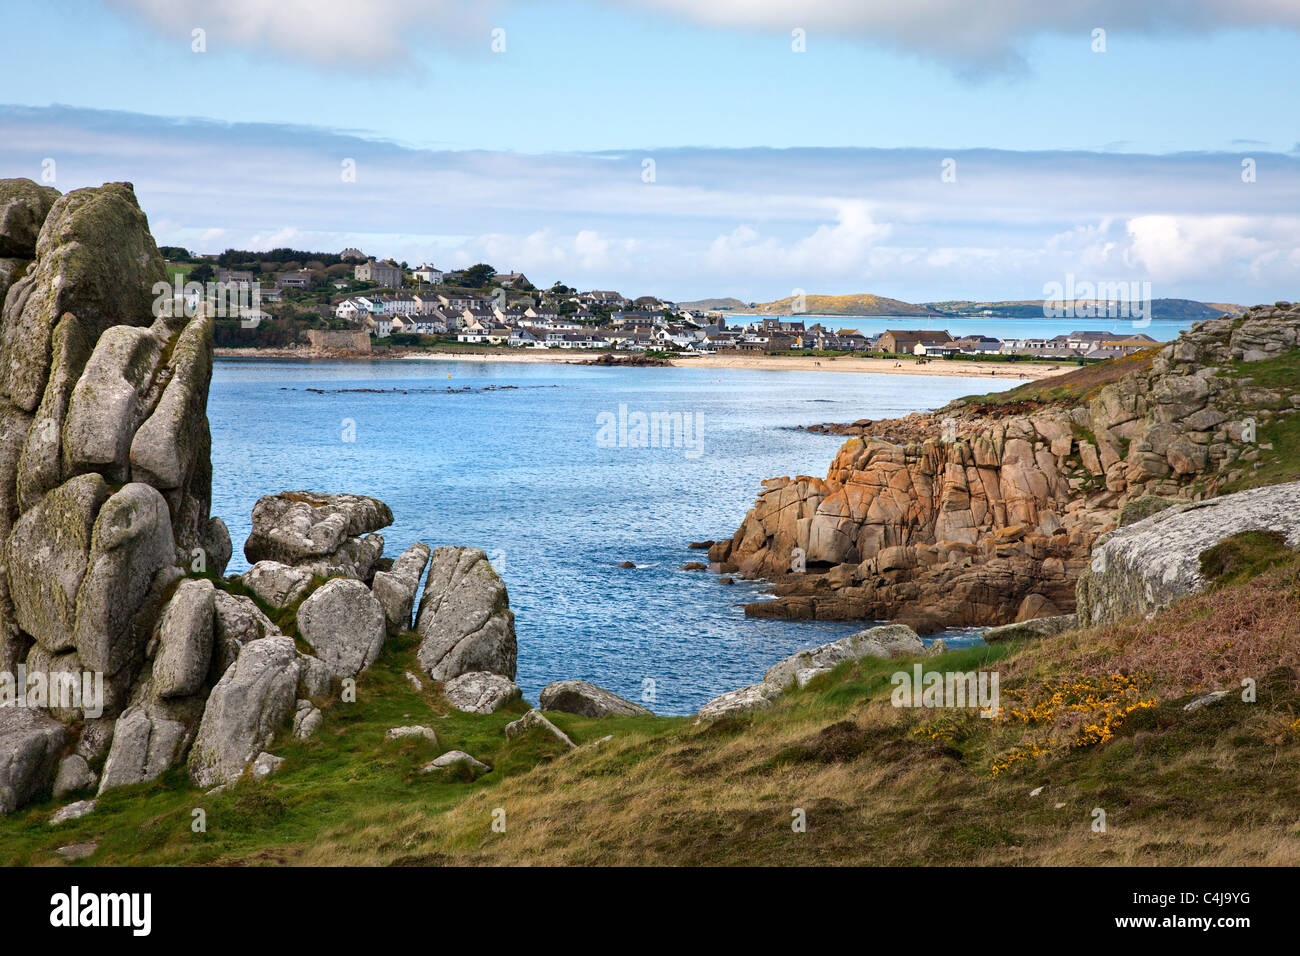 Hugh Town and Porthcressa beach on St Mary's Isles of Scilly with the island of Bryher beyond - Stock Image